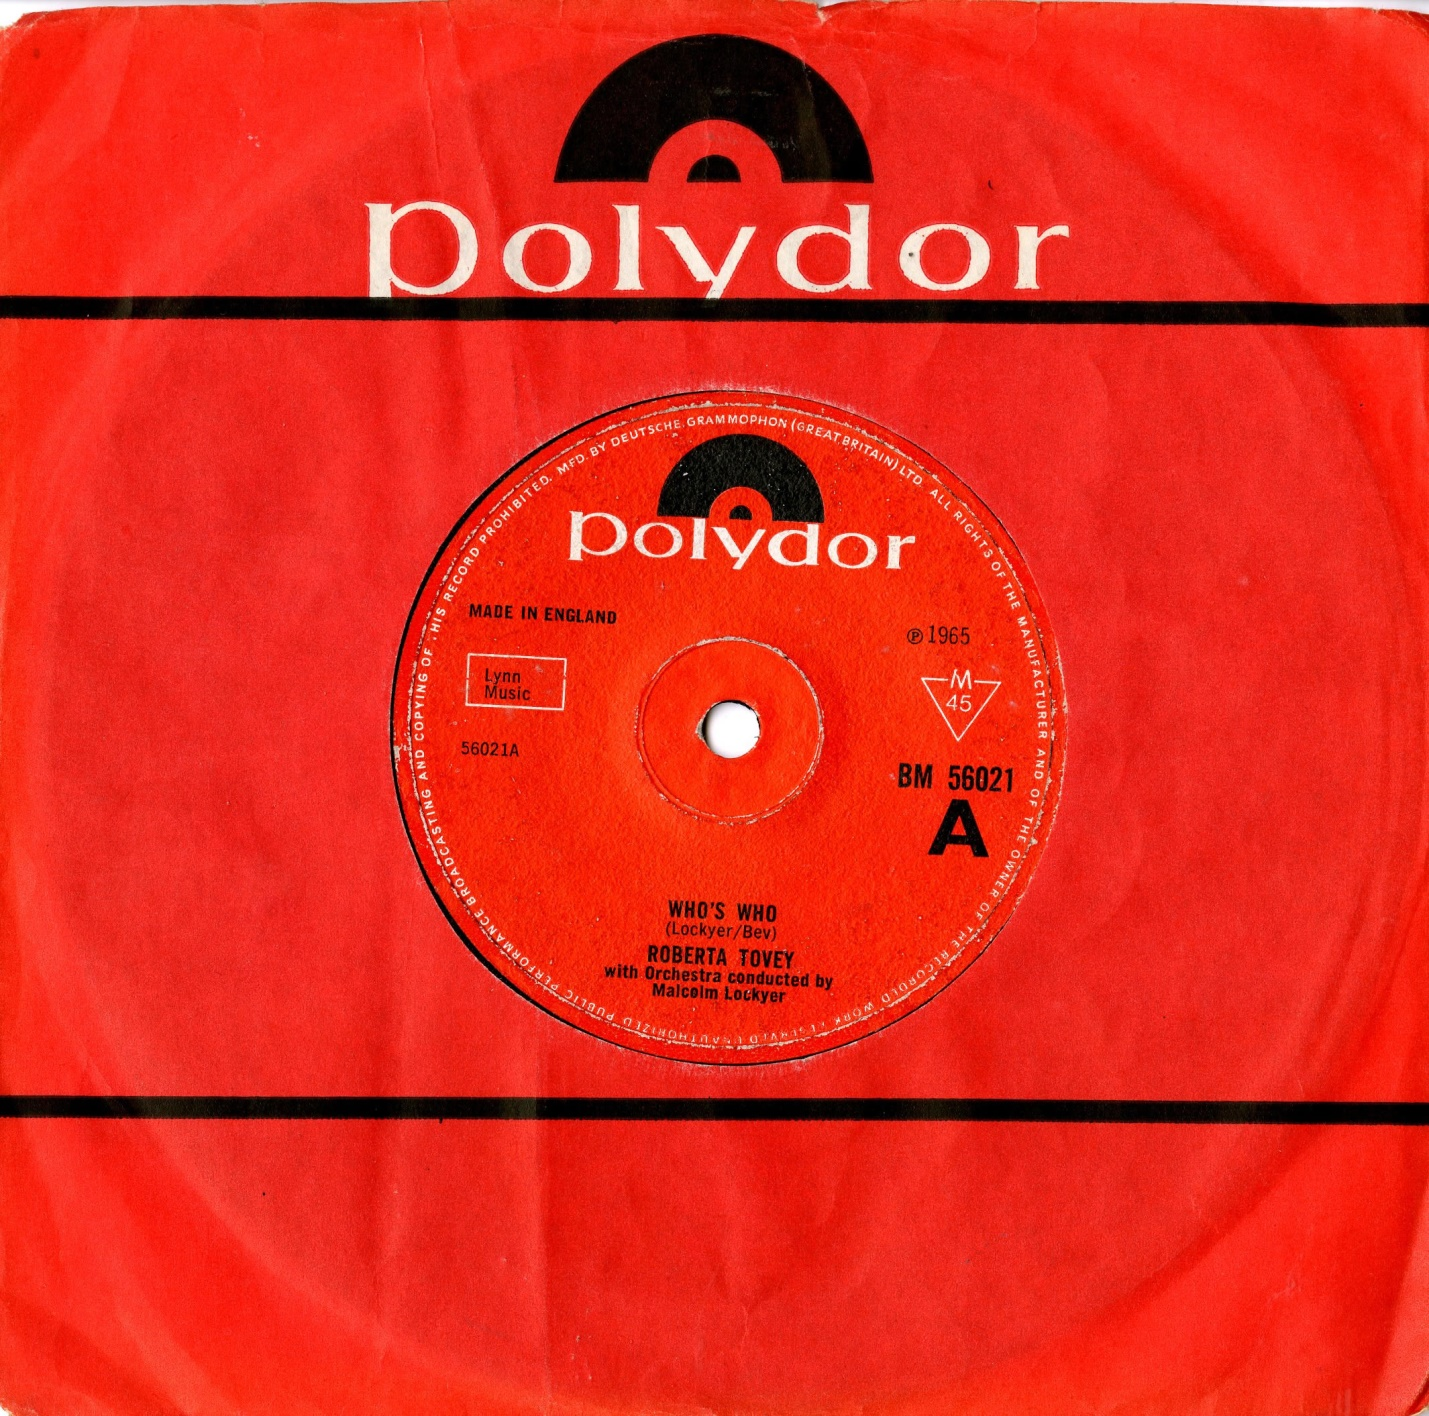 Polydor Ltd., Who's Who by Roberta Tovey with the Malcolm Lockyer Orchestra, catalogue no. BM 56021